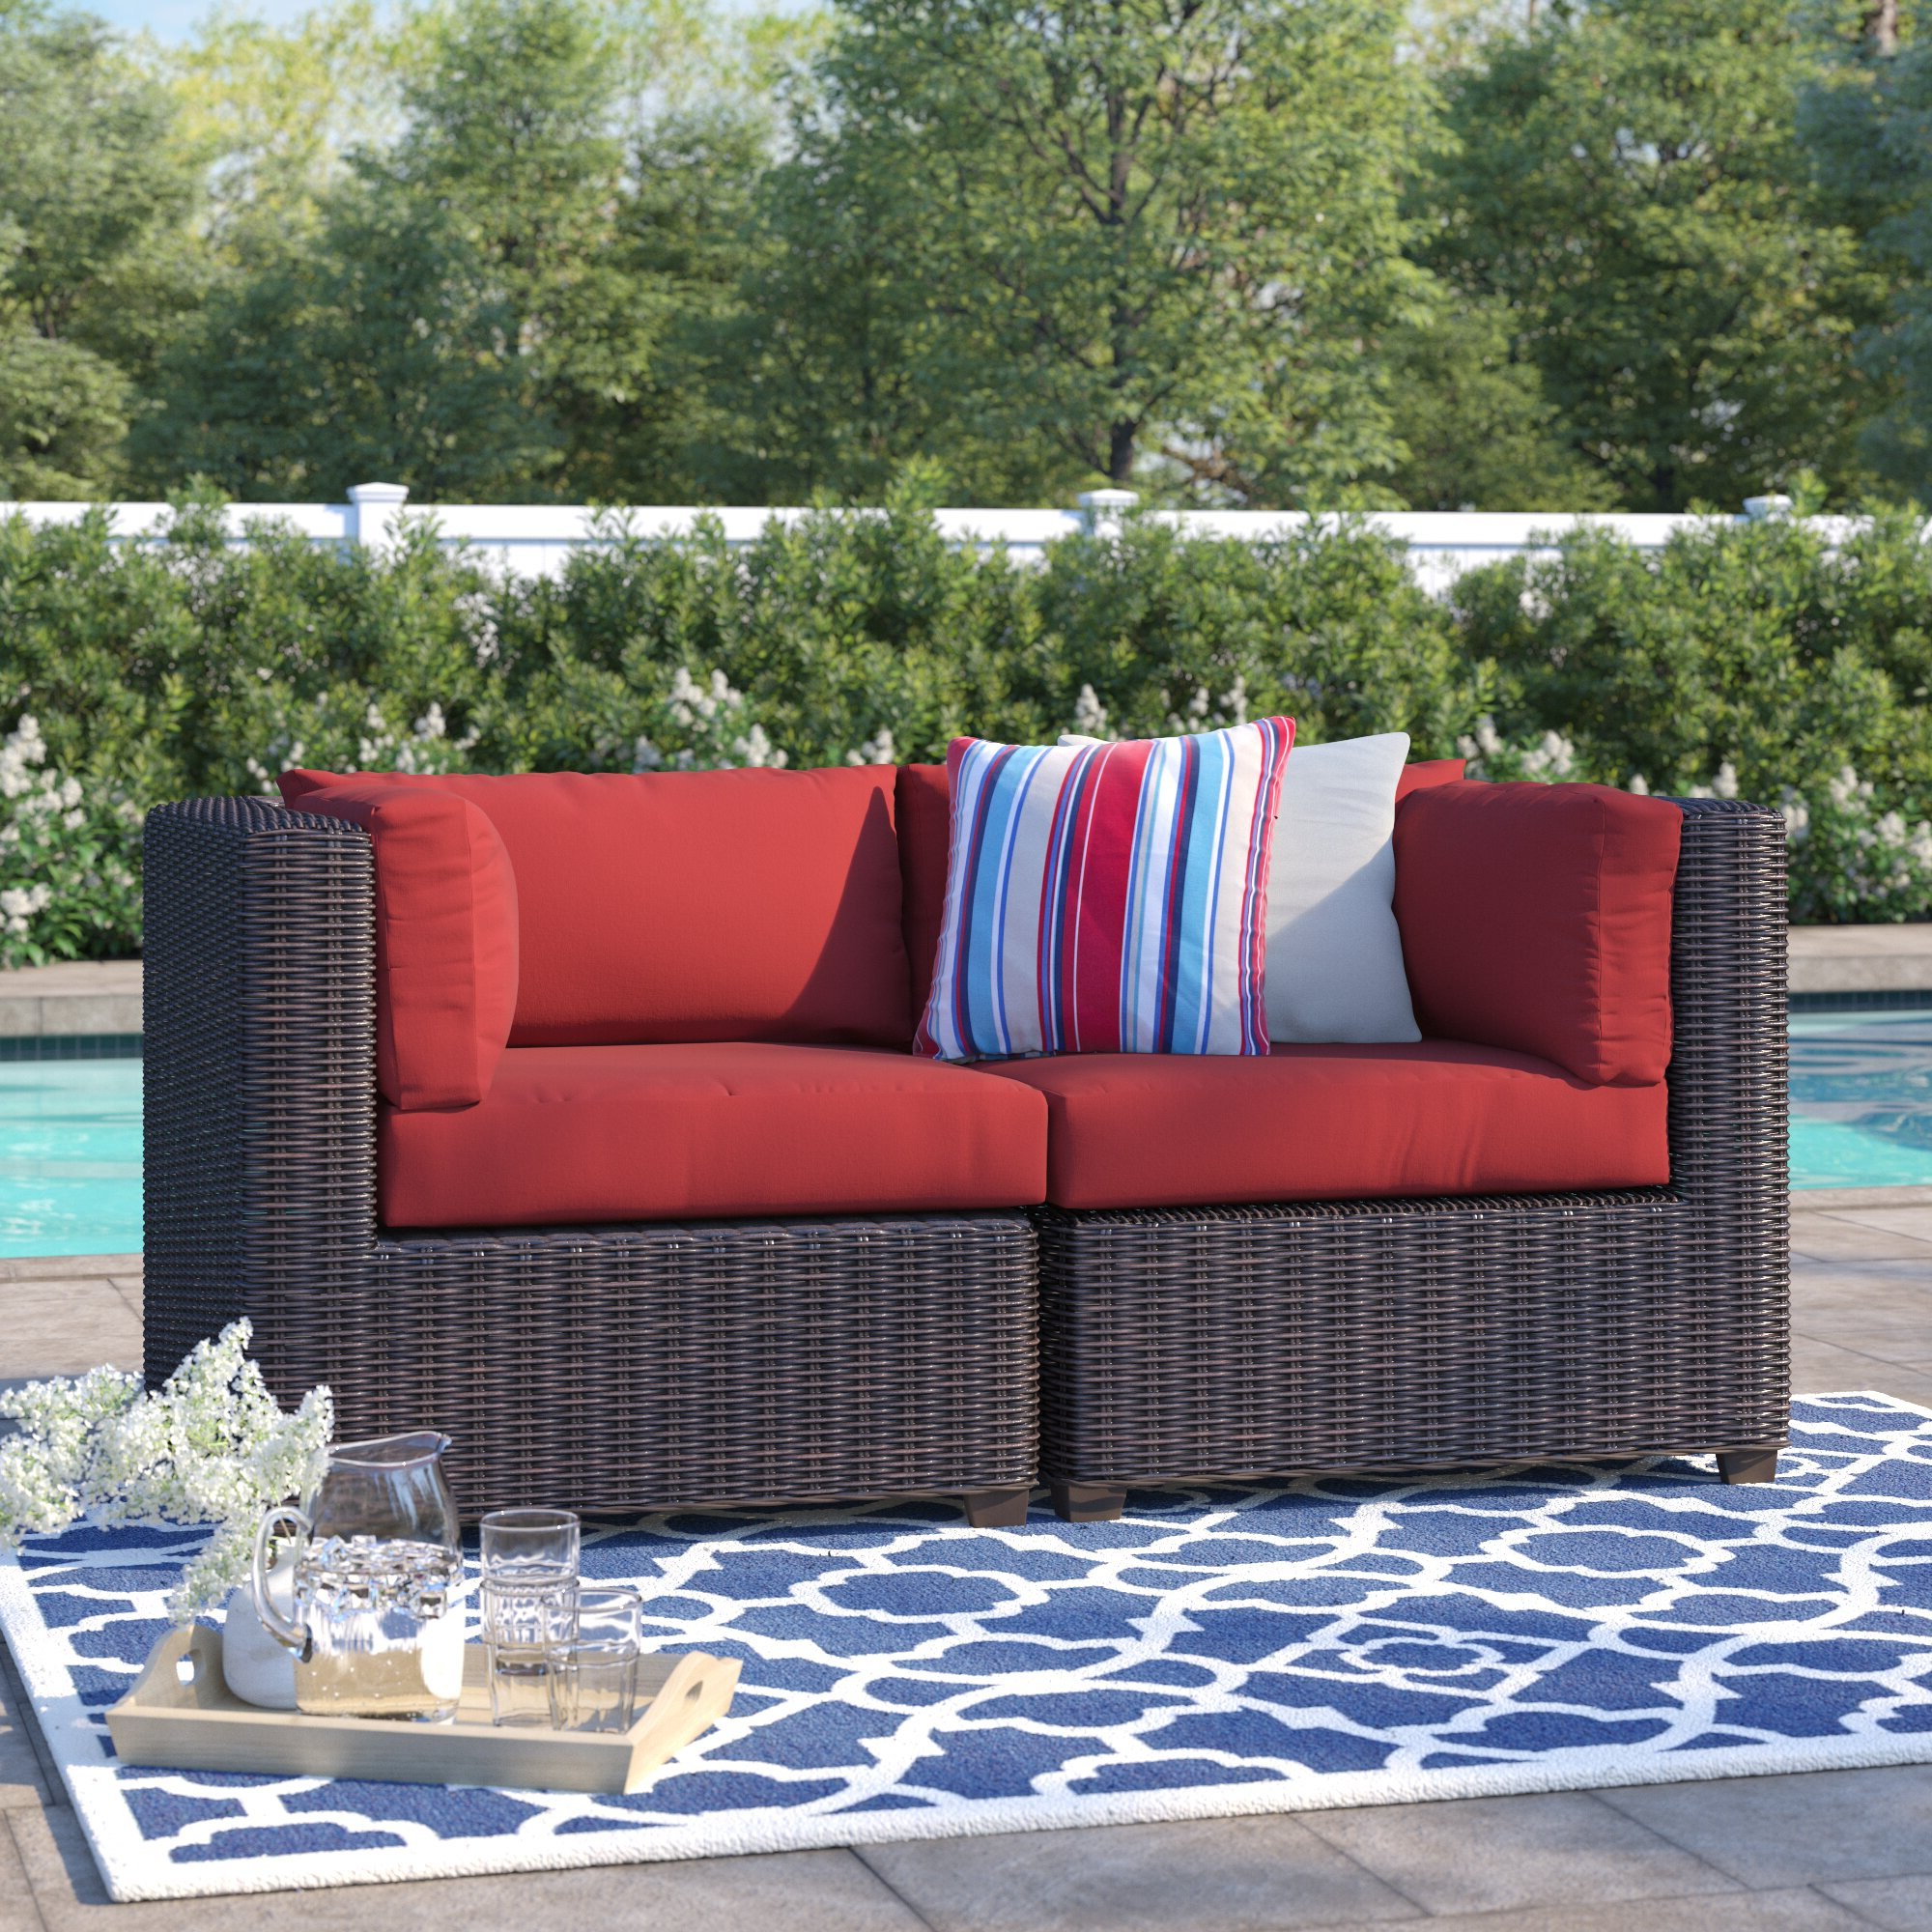 Northridge Loveseats With Cushions In Latest Fairfield Patio Loveseat With Cushions (View 11 of 20)